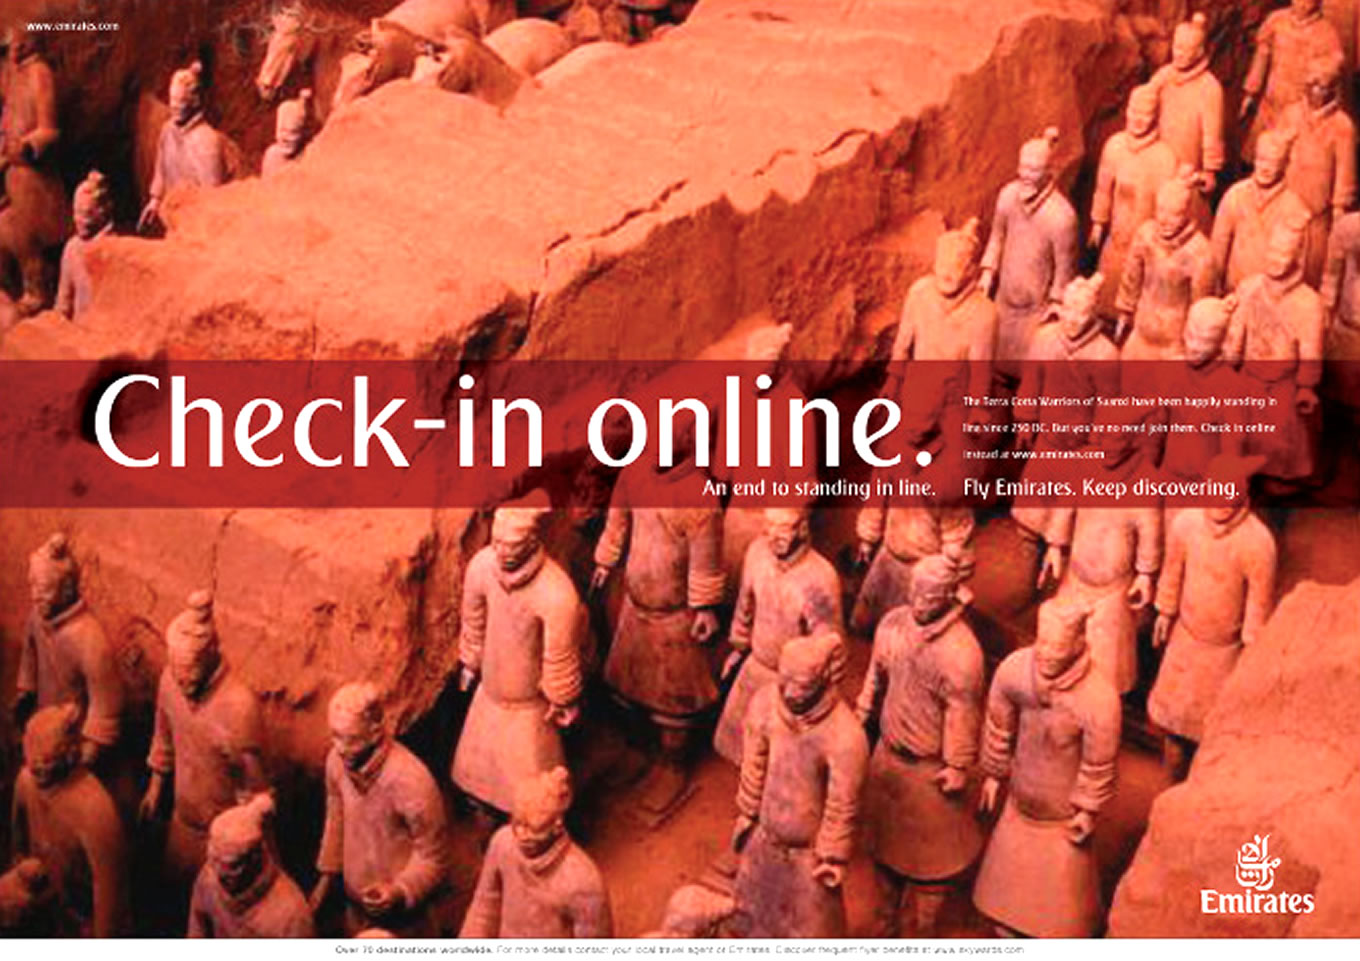 Check In Online Print Advertising, Keep Discovering Marketing Campaign by Emirates